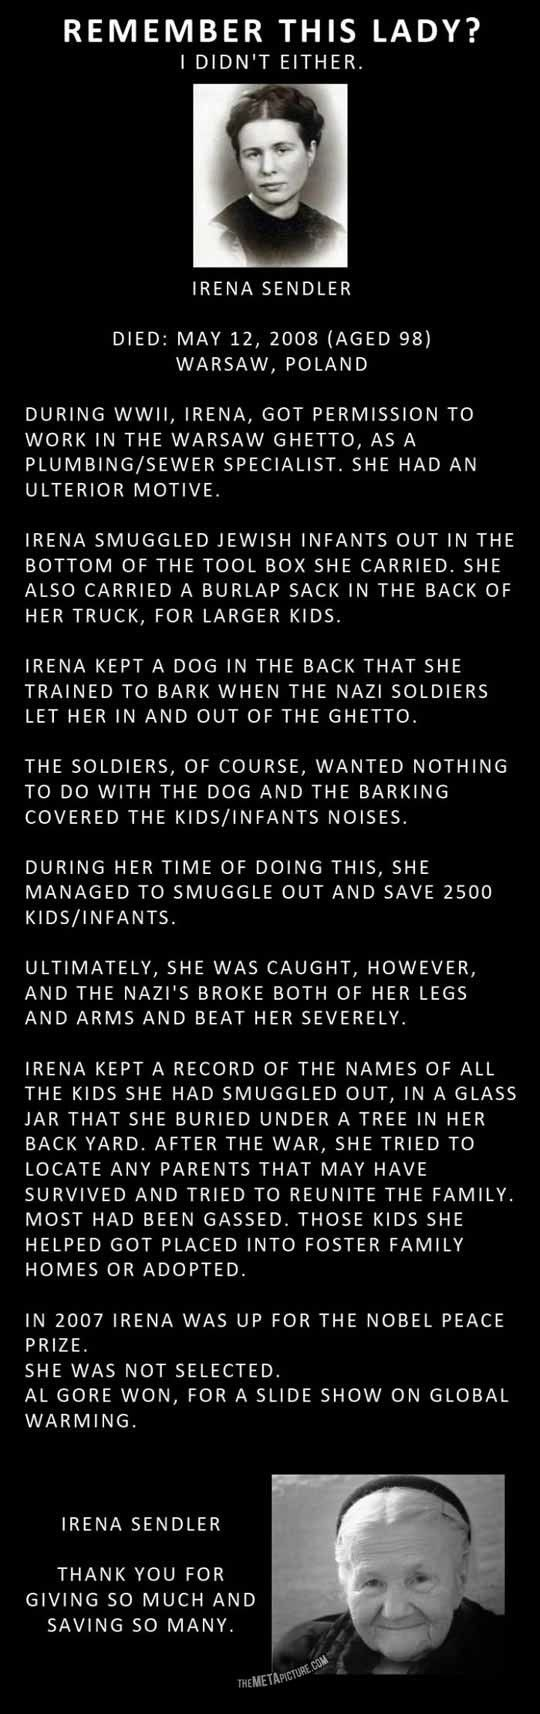 Irena Sendler -- brave and compassionate hero that should have been the 2007 Nobel Peace Prize winner.